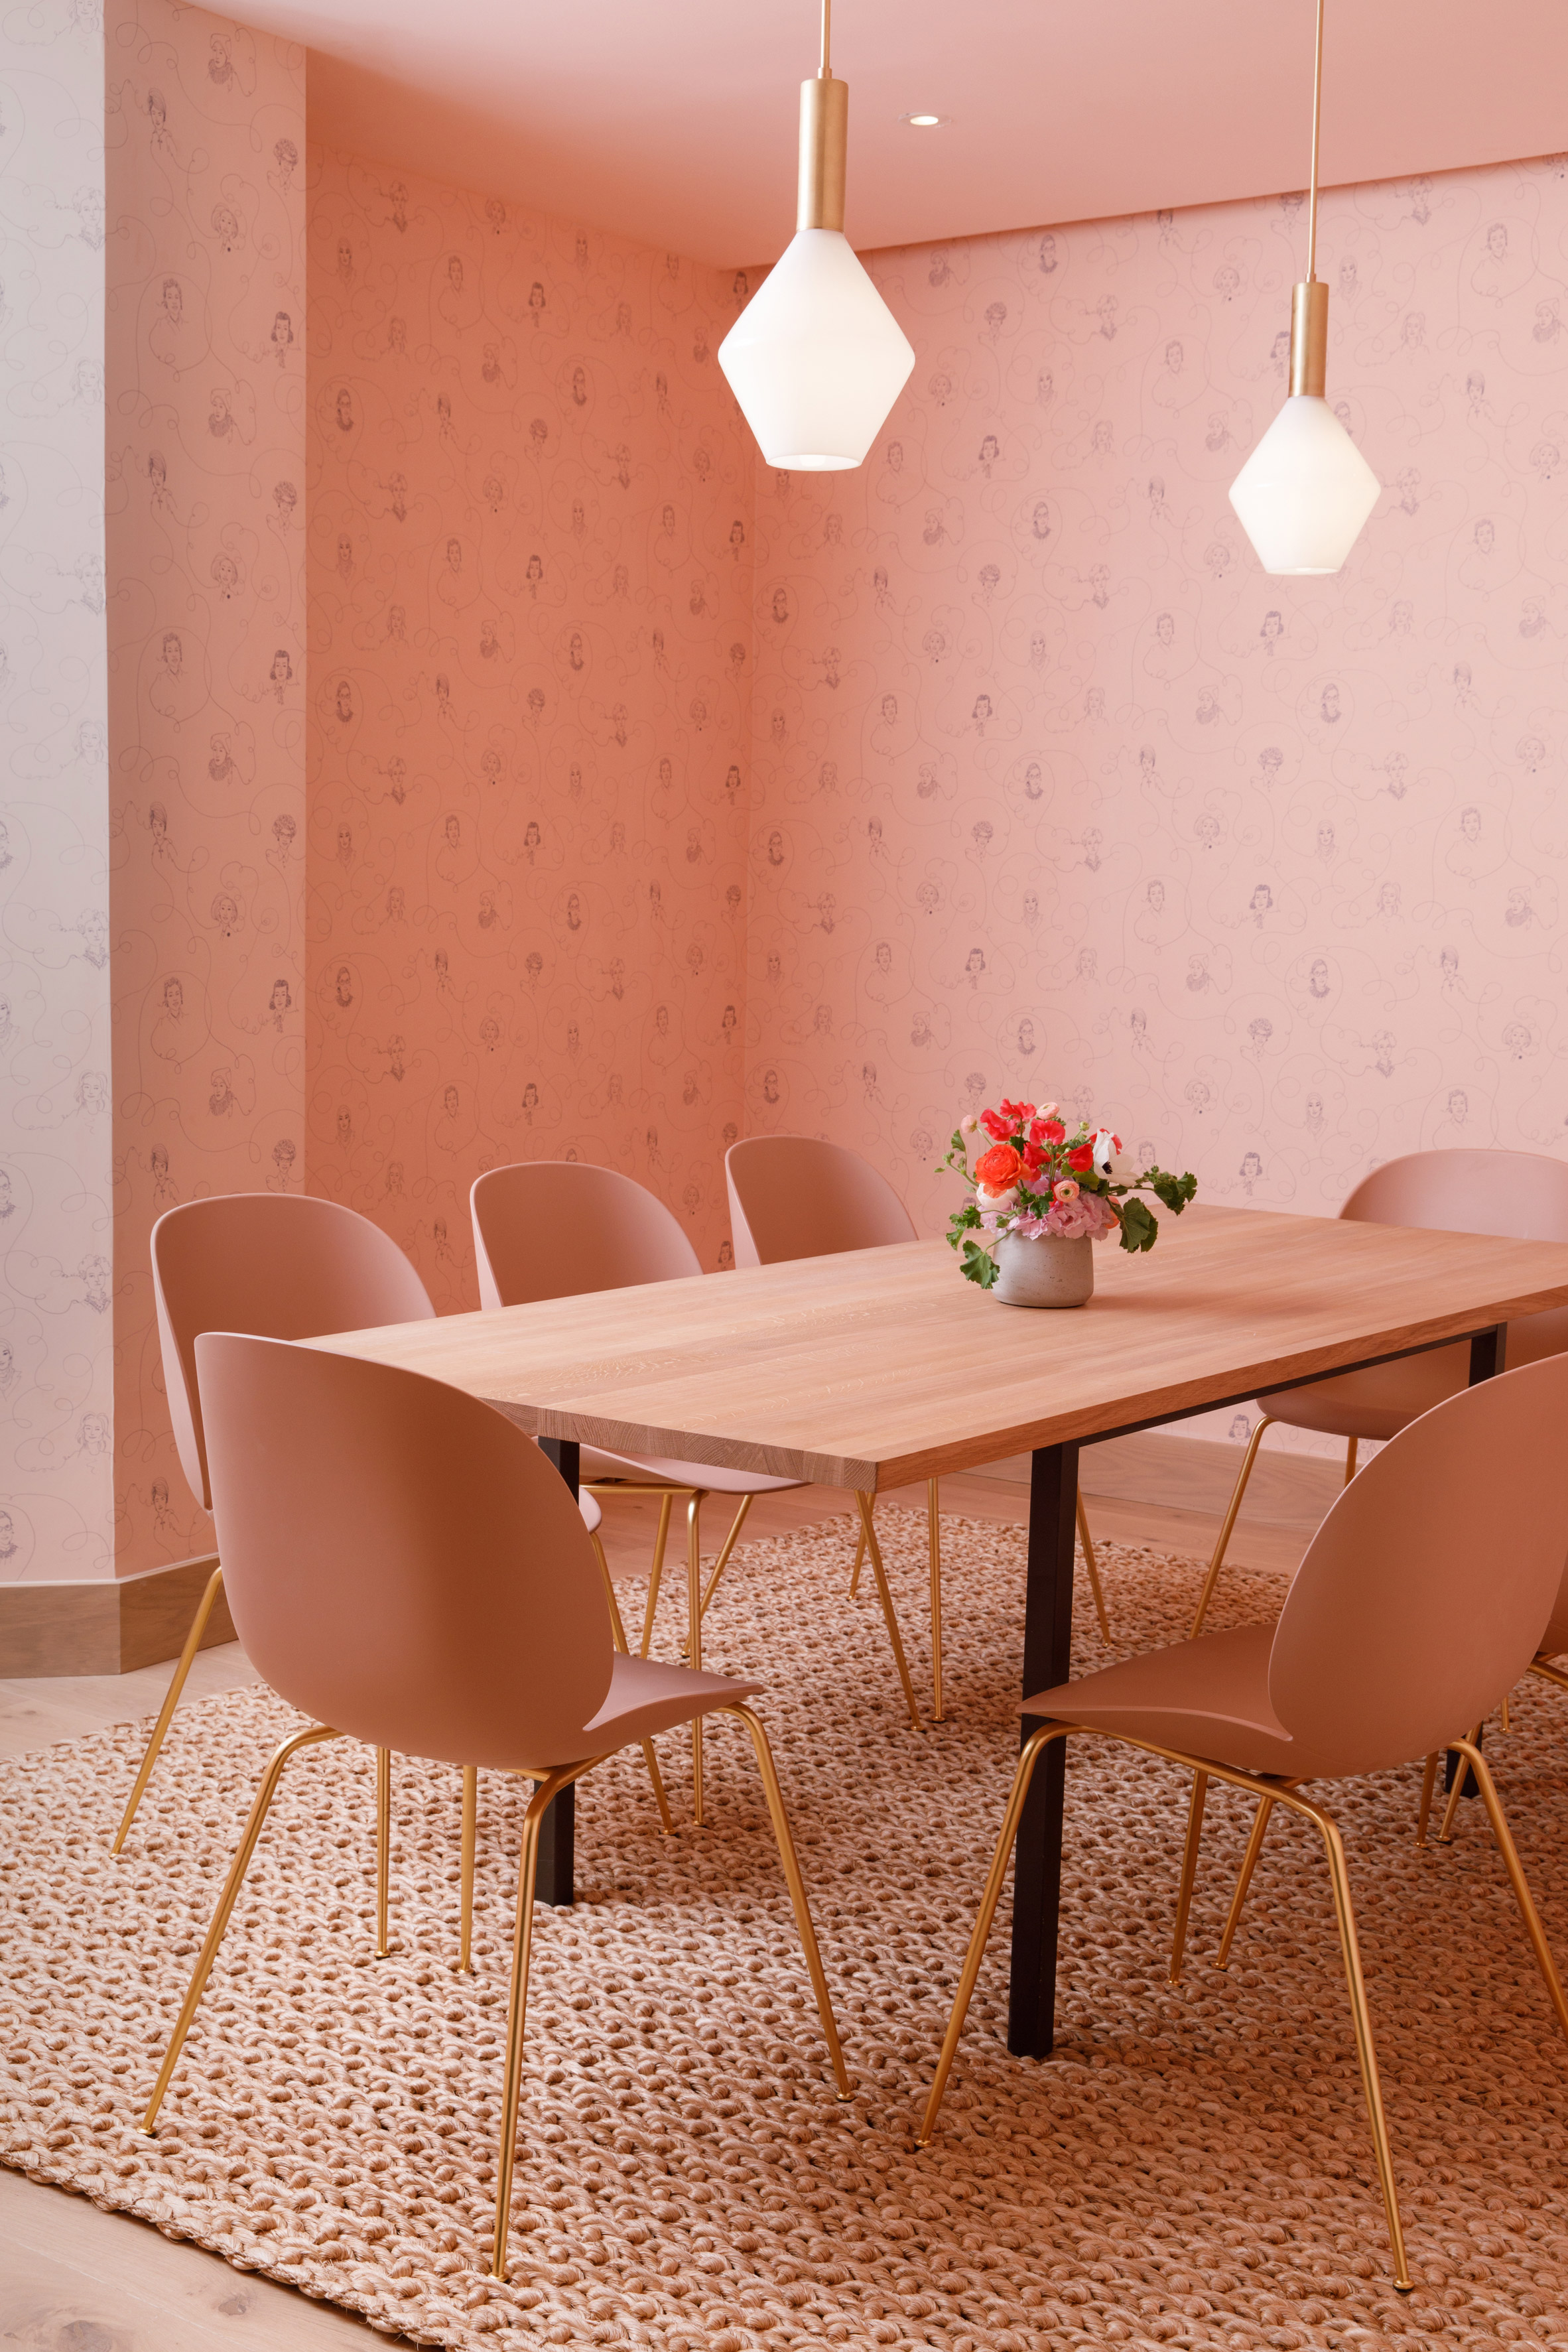 Photography: The Wing Meeting room